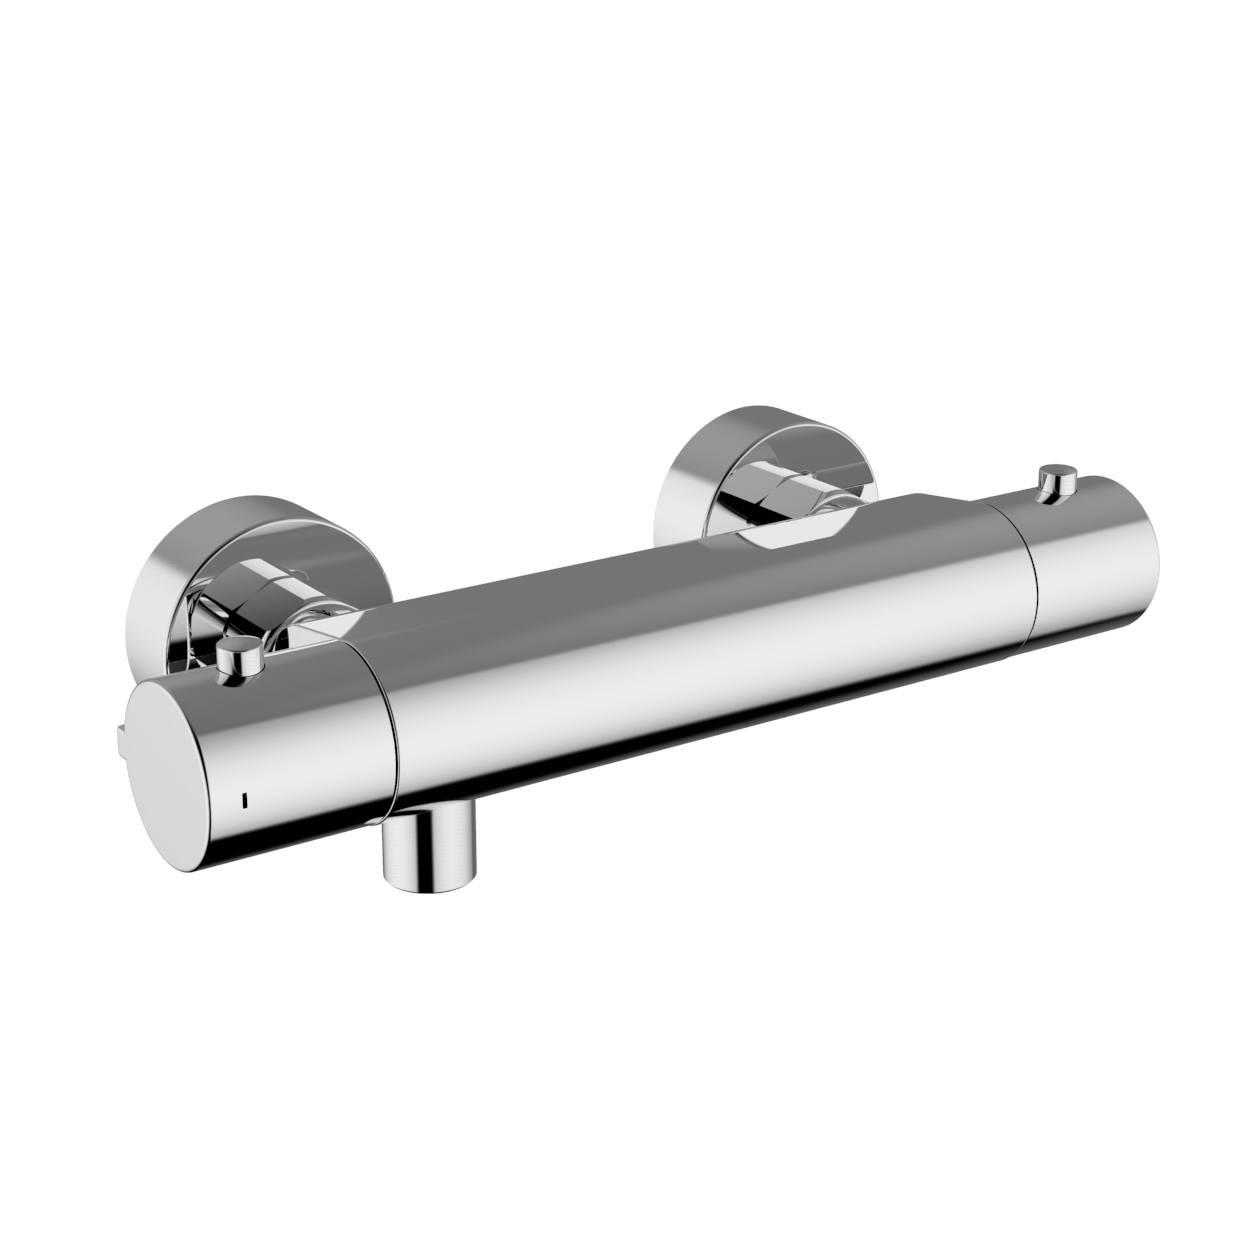 HD Image External Thermostatic Shower Mixer DALI HANDLE